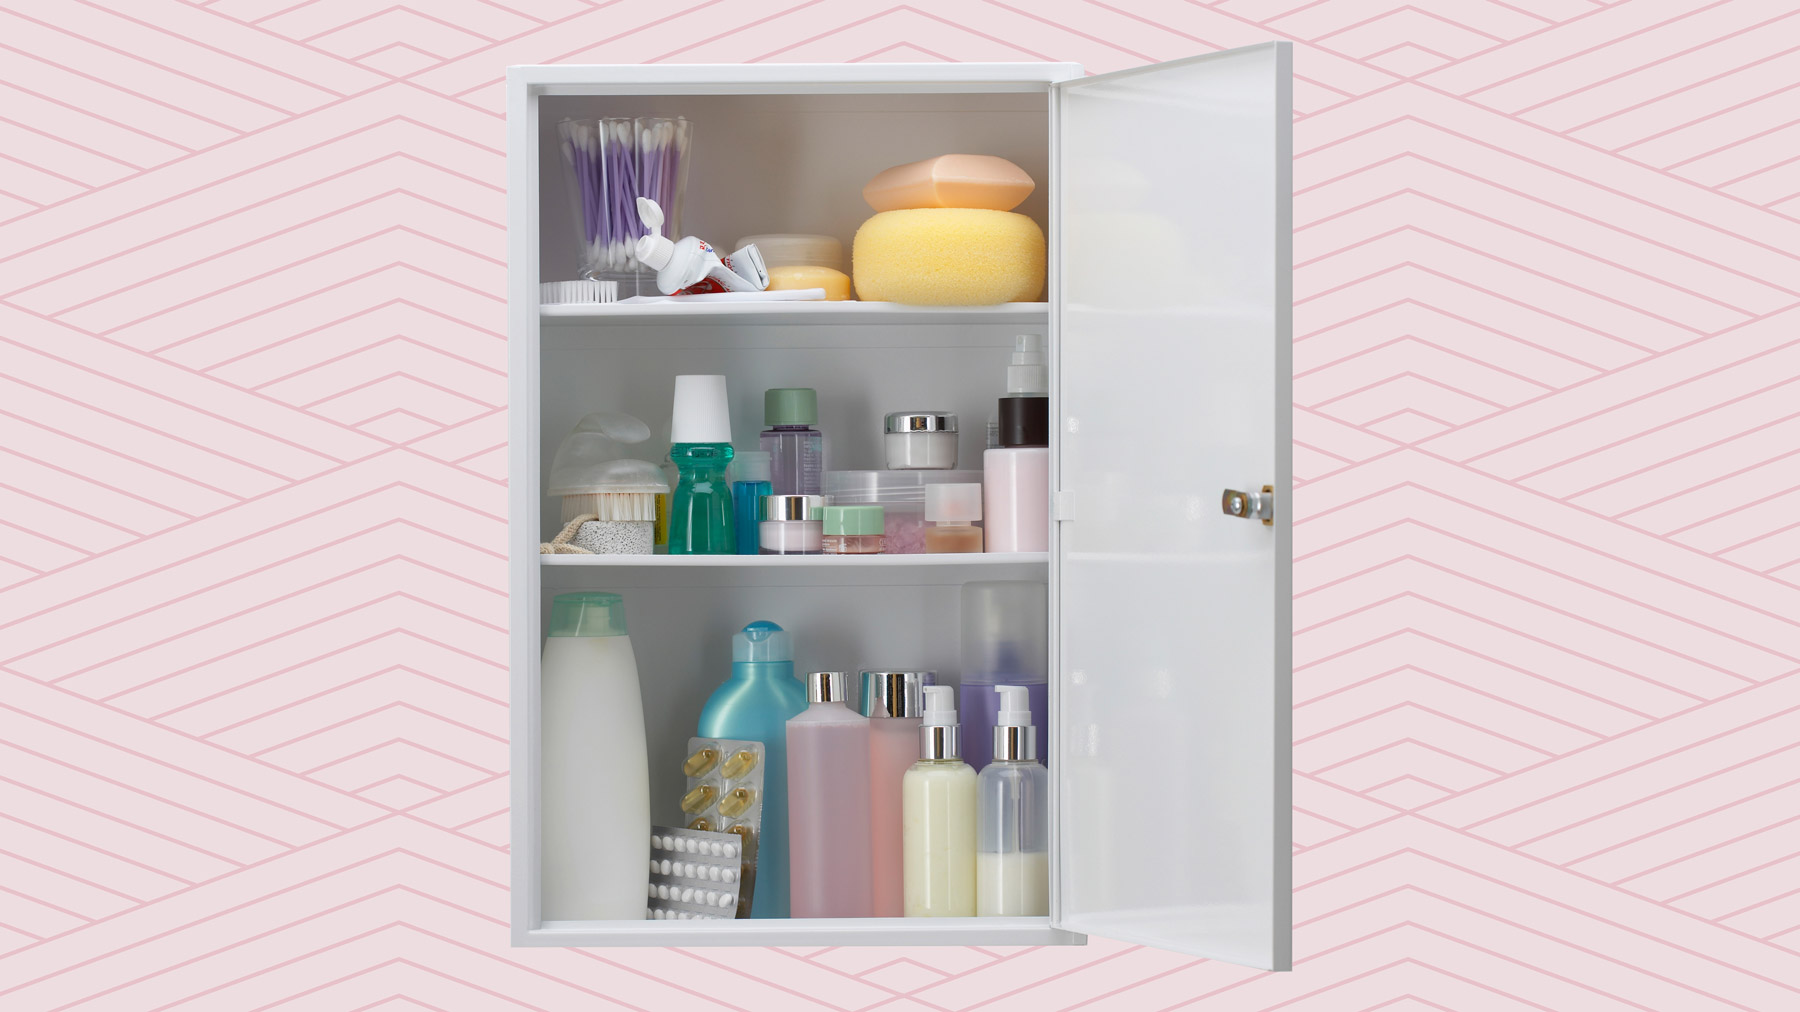 Medicine cabinet storage rules - shoulds and shouldn'ts